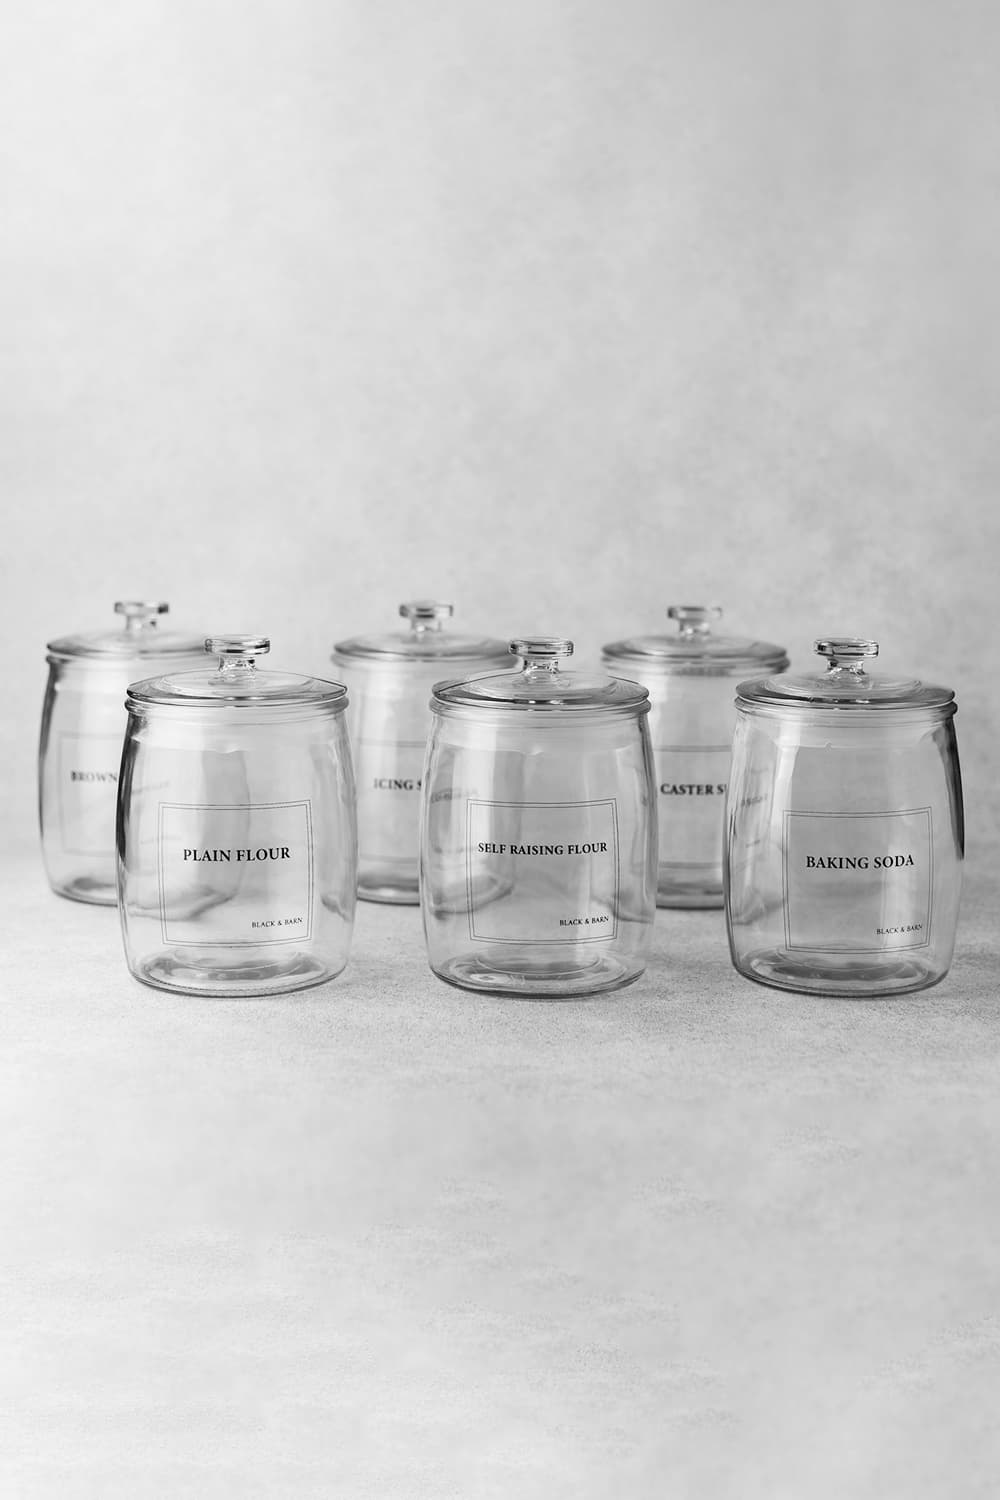 Army of baking jars with engraved label set